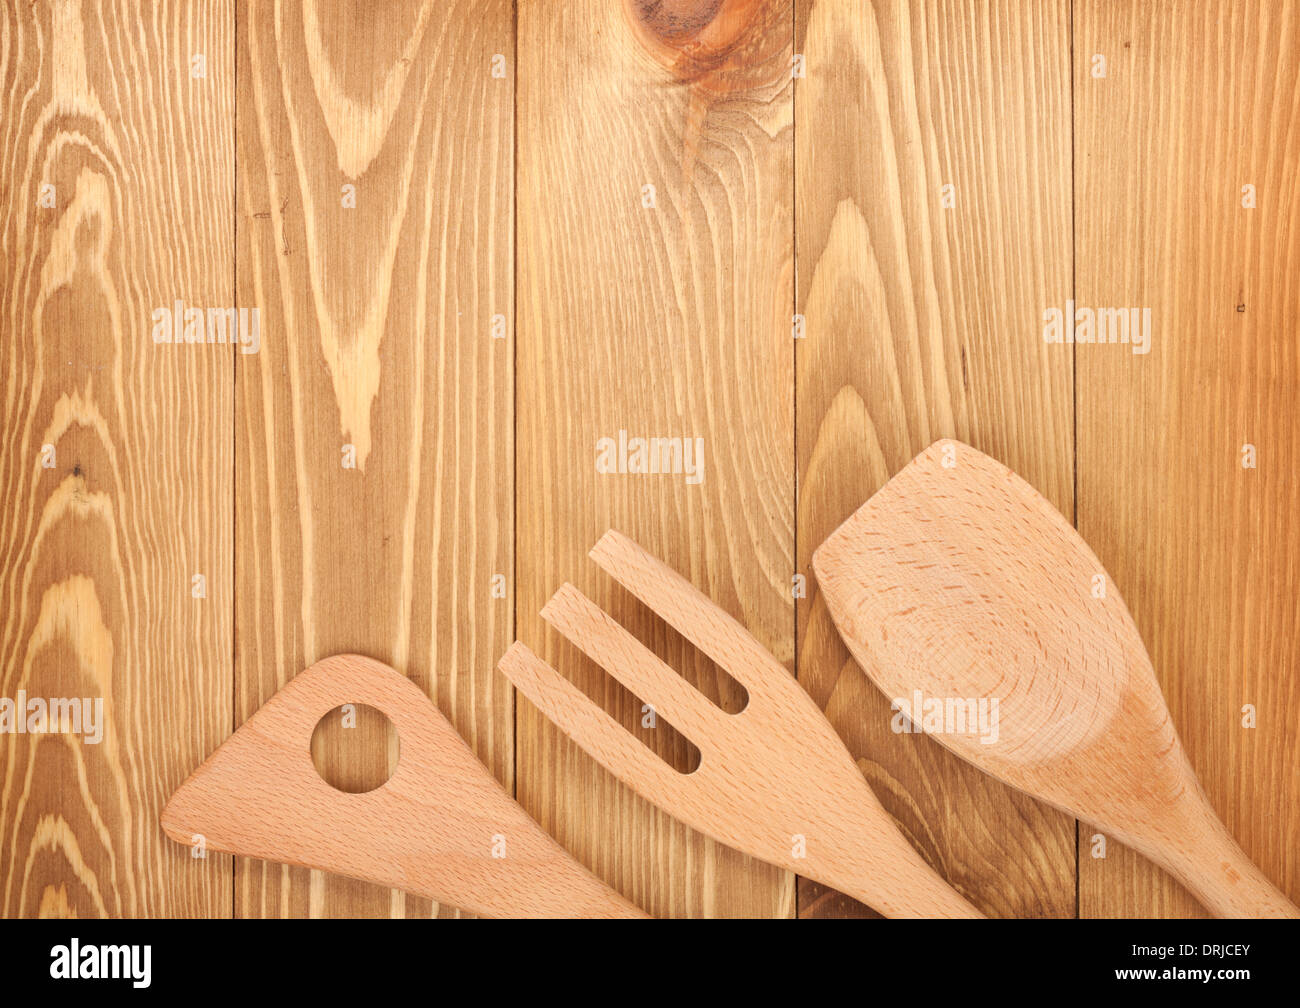 Kitchen utensils on wooden table background View from above with